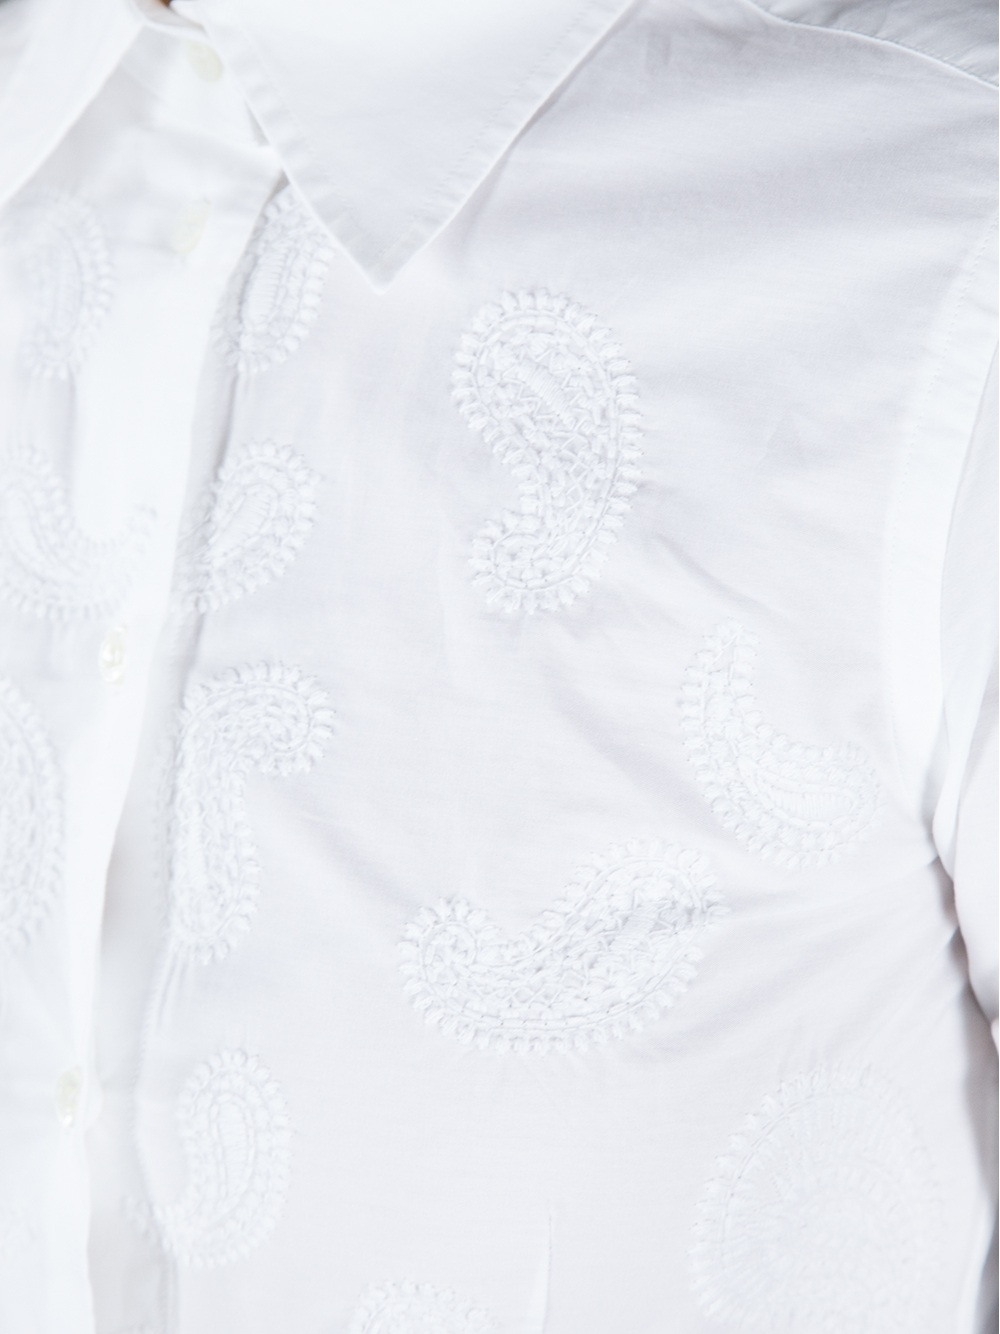 Clearance Real paisley shirt - White Etro Cheap Sale Extremely Cheapest Clearance Low Shipping Fee Outlet Cheapest UkvZO